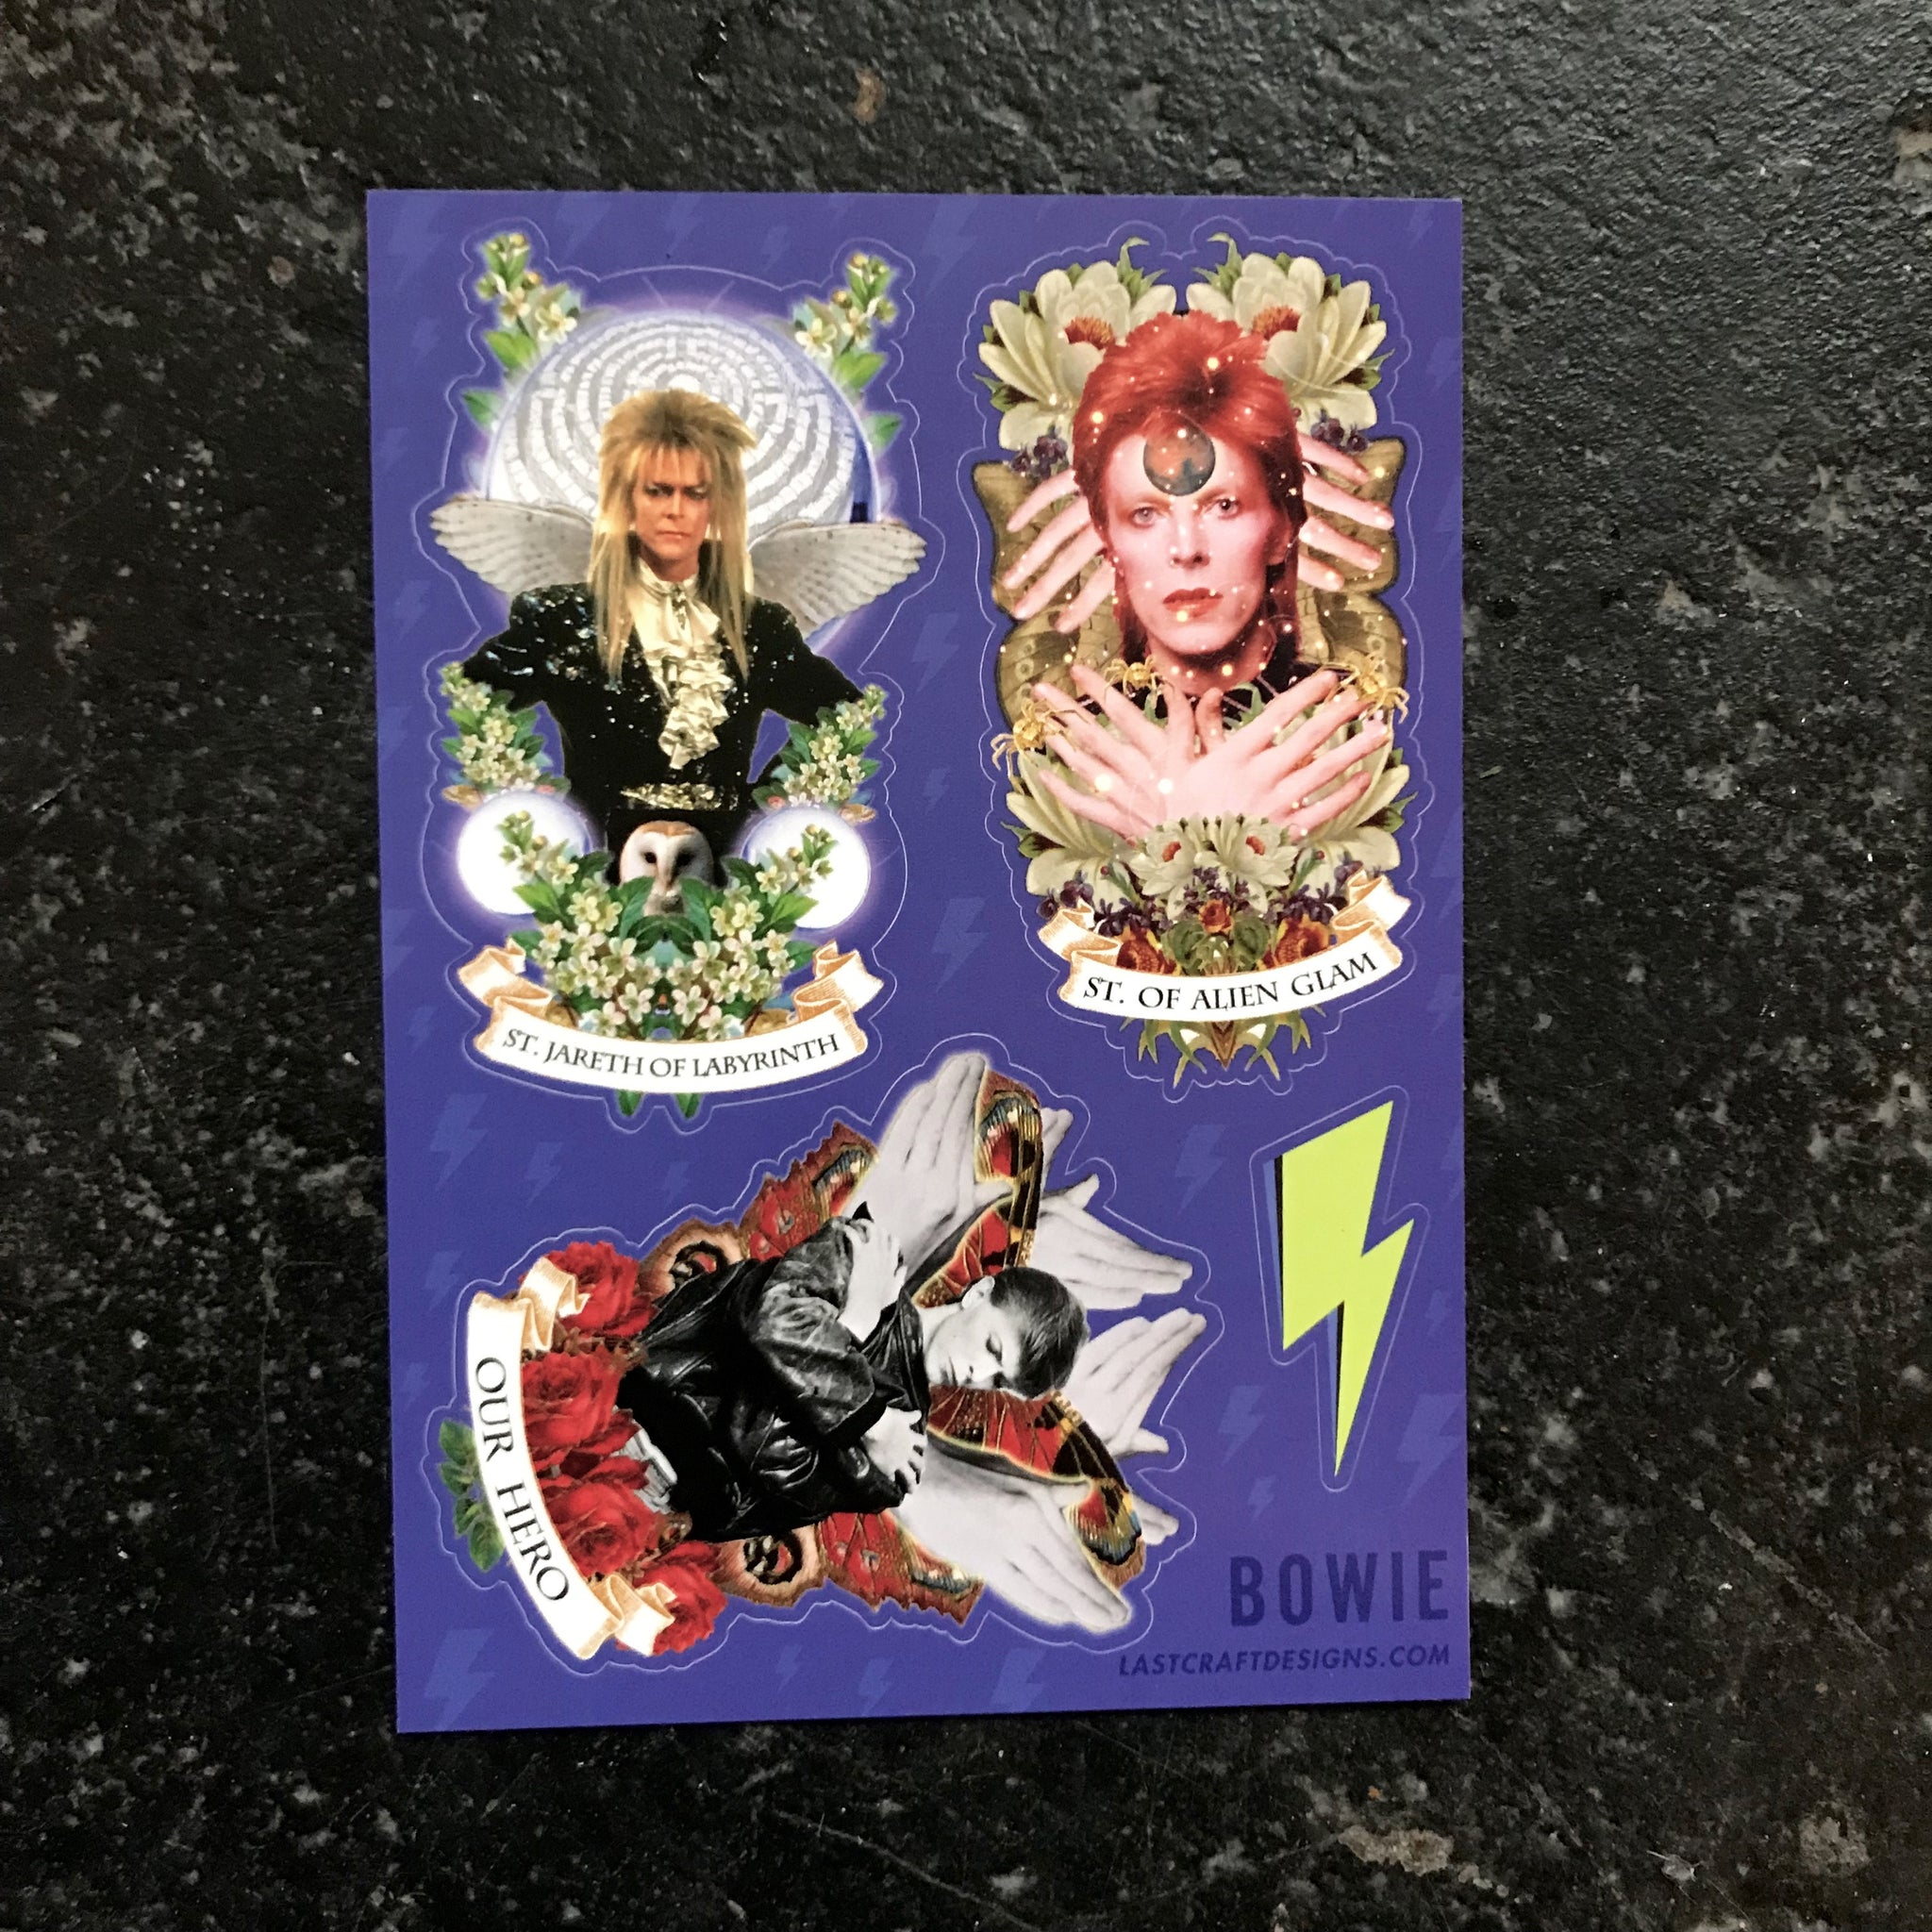 Bowie Sticker Sheet - 5x7 Vinyl Stickers